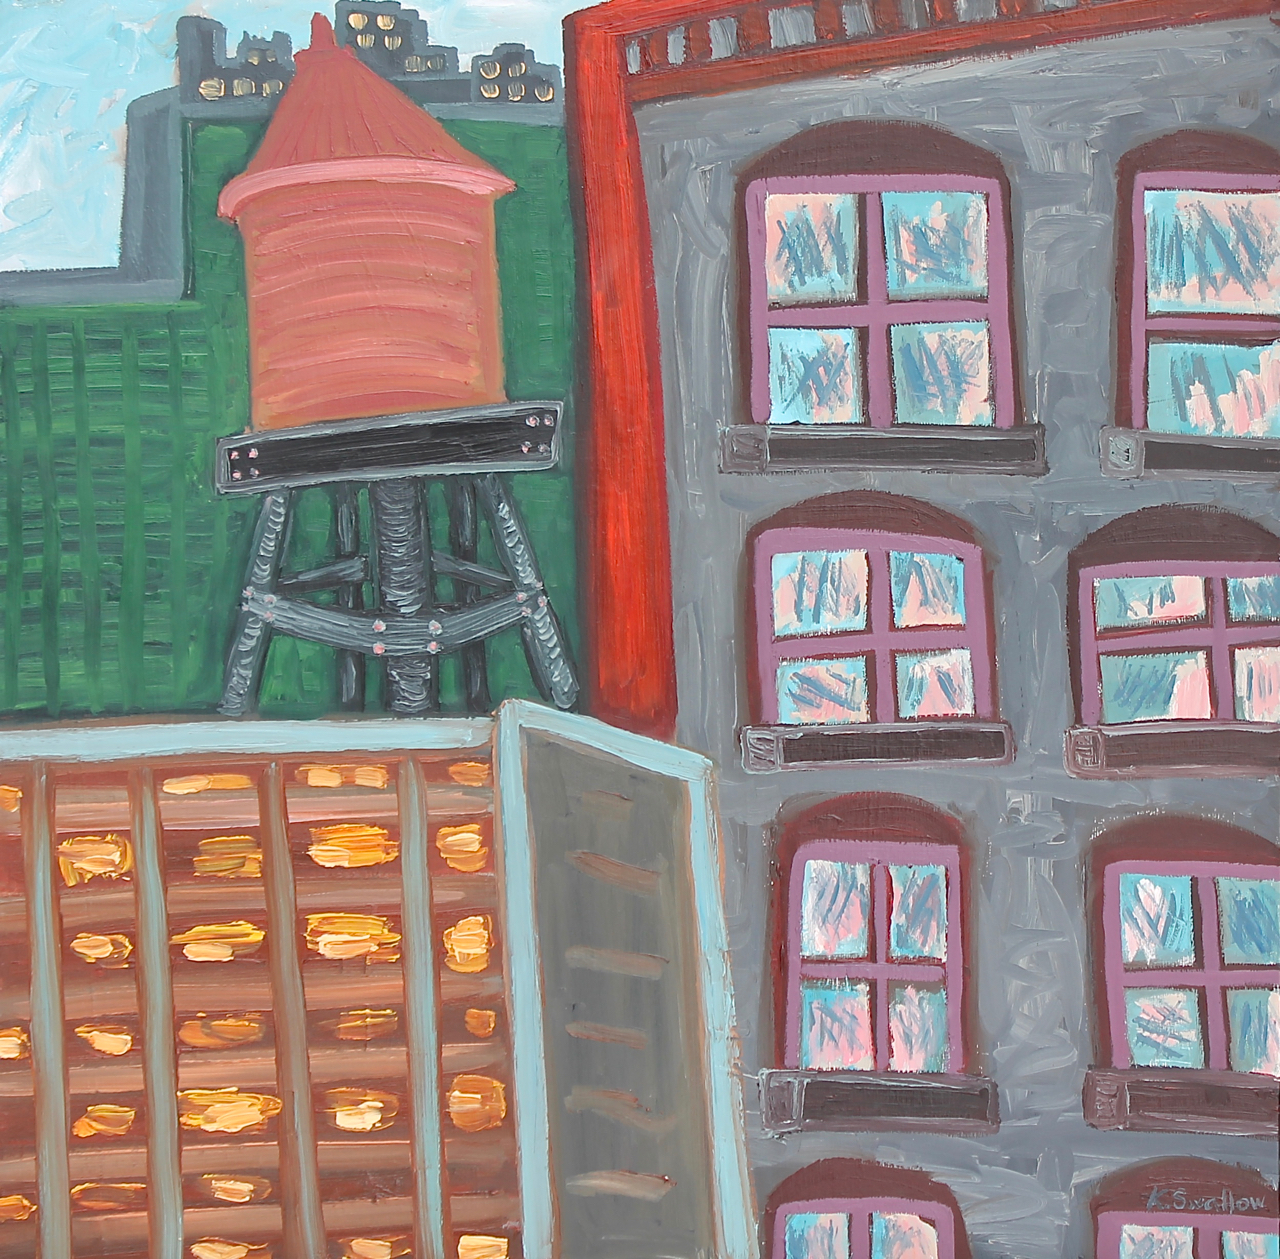 South State Street Lofts, oil on panel, 24x24, 2015, AVAILABLE